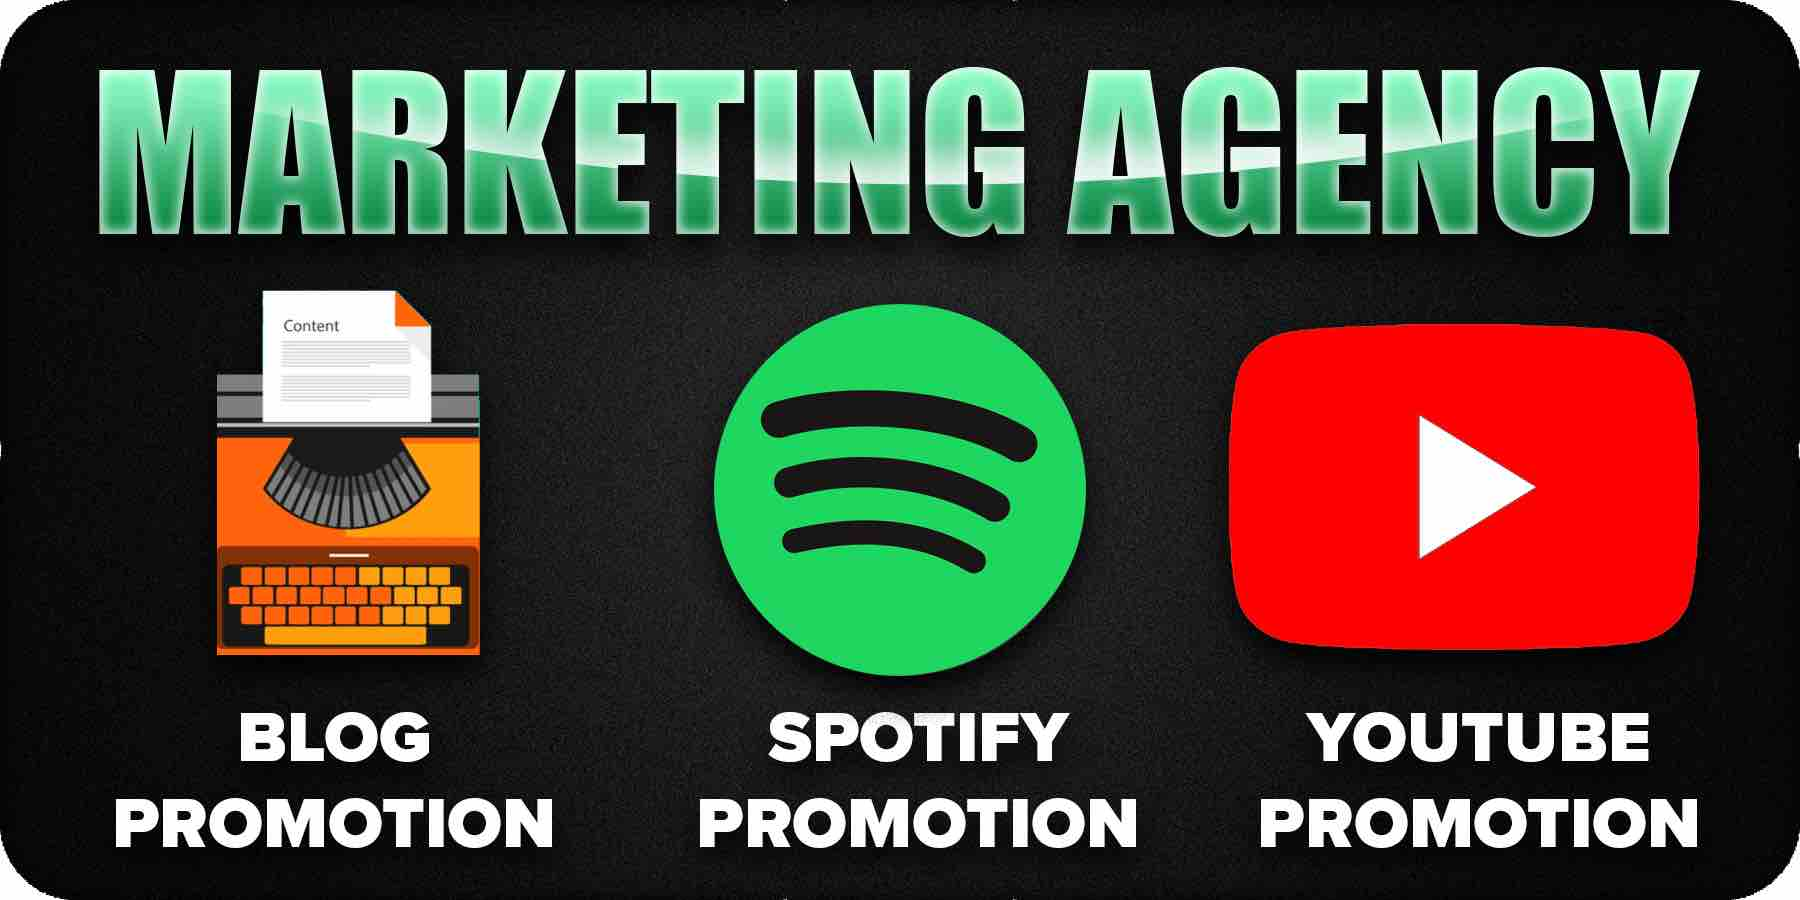 Marketing agency benefits and services